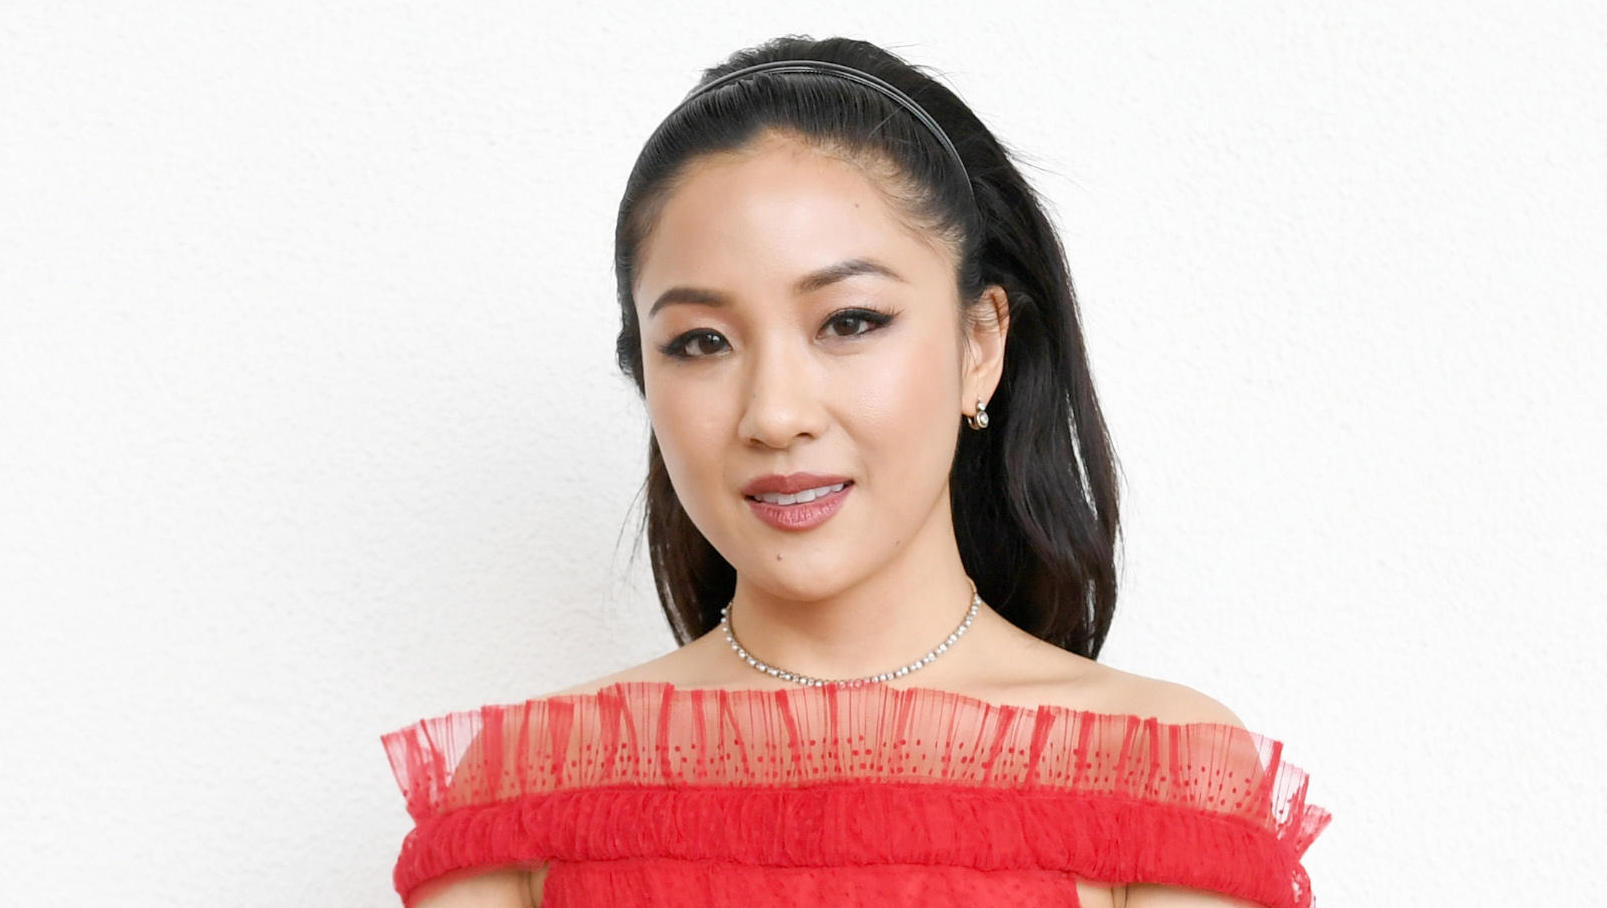 constance wu playconstance wu height, constance wu boyfriend, constance wu diva, constance wu interview, constance wu salary, constance wu fresh off the boat, constance wu wiki, constance wu cardi b, constance wu twitter, constance wu eye, constance wu salary hustlers, constance wu play, constance wu photos, constance wu fan, constance wu tumblr, constance wu jennifer lopez movie, constance wu gallery, constance wu eye surgery, constance wu instagram, constance wu hustlers